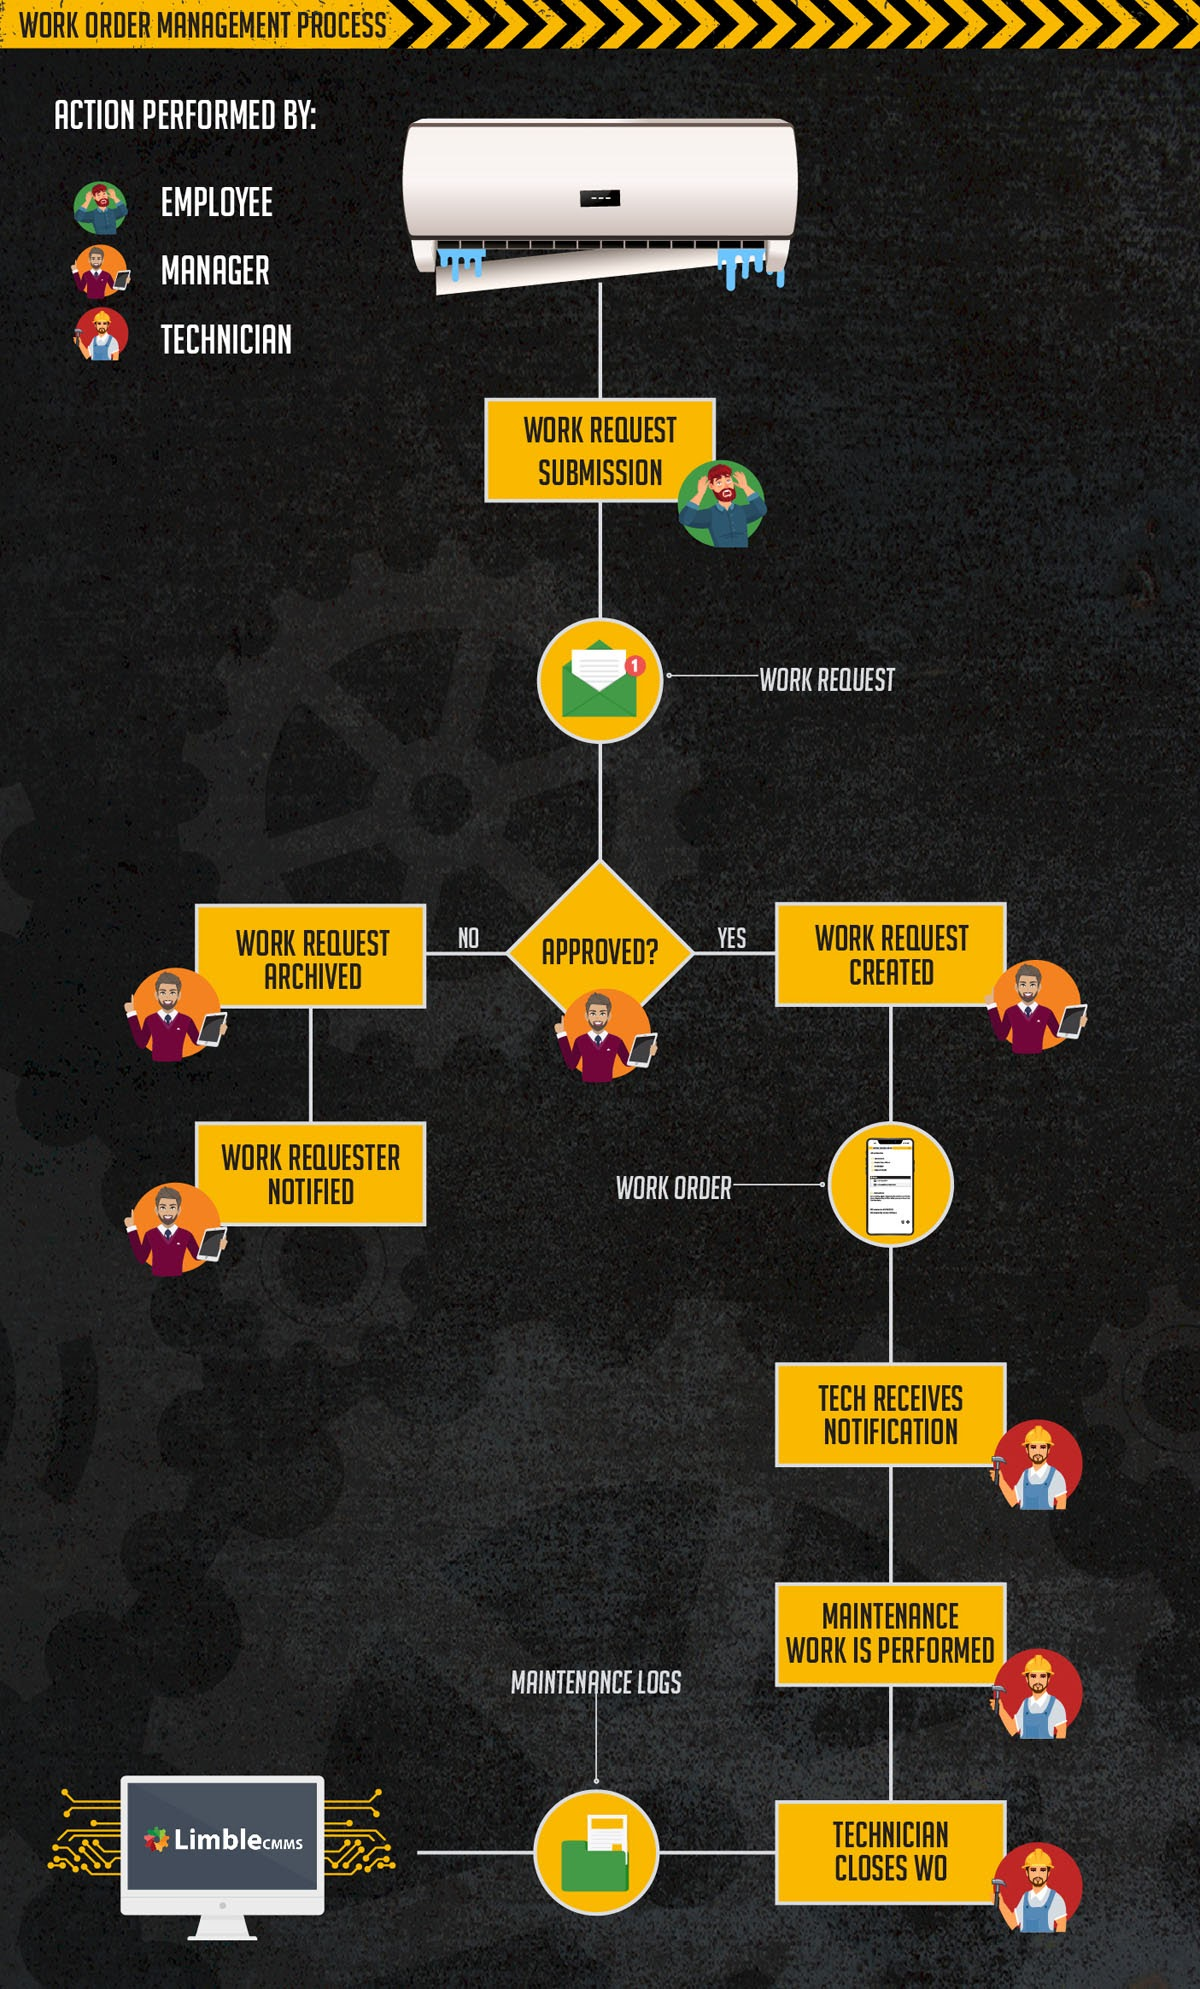 Anatomy of a Work Order Management Process #infographic